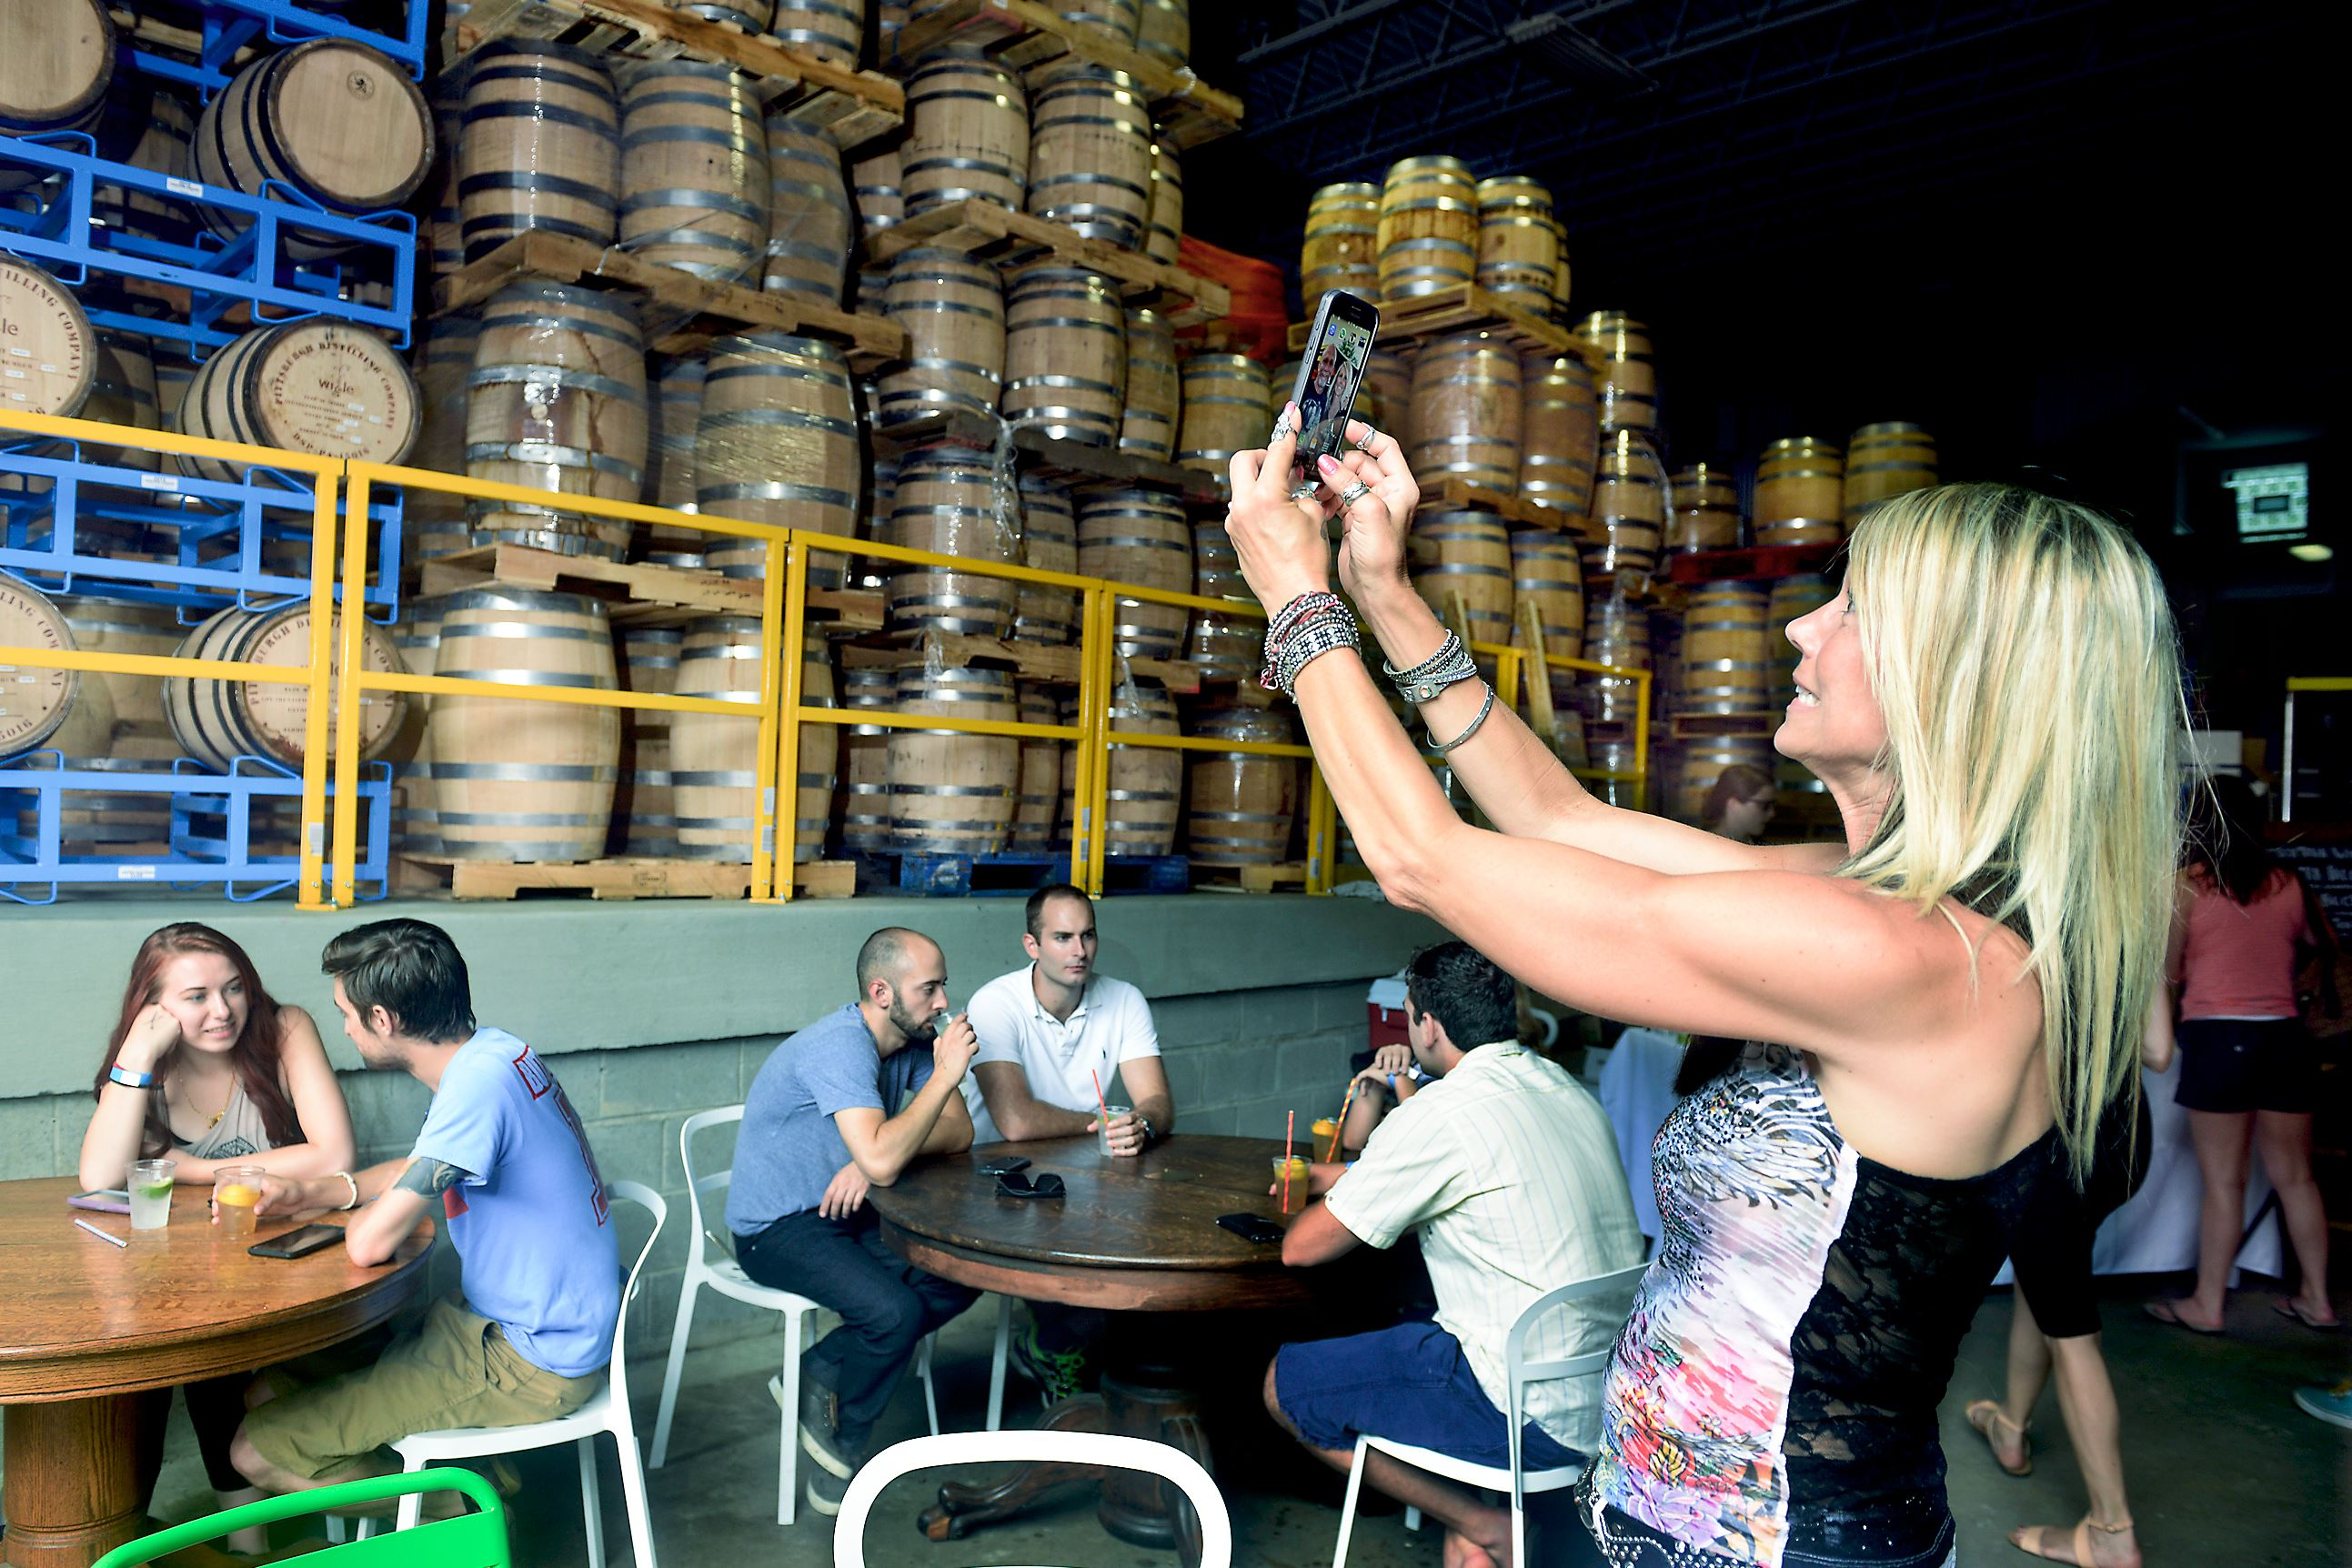 20150711bwWigleDistinction01x Paige Conklin of Ellwood City takes photos of barrels at Wigle Whiskey Barrelhouse on the North Side earlier this summer.